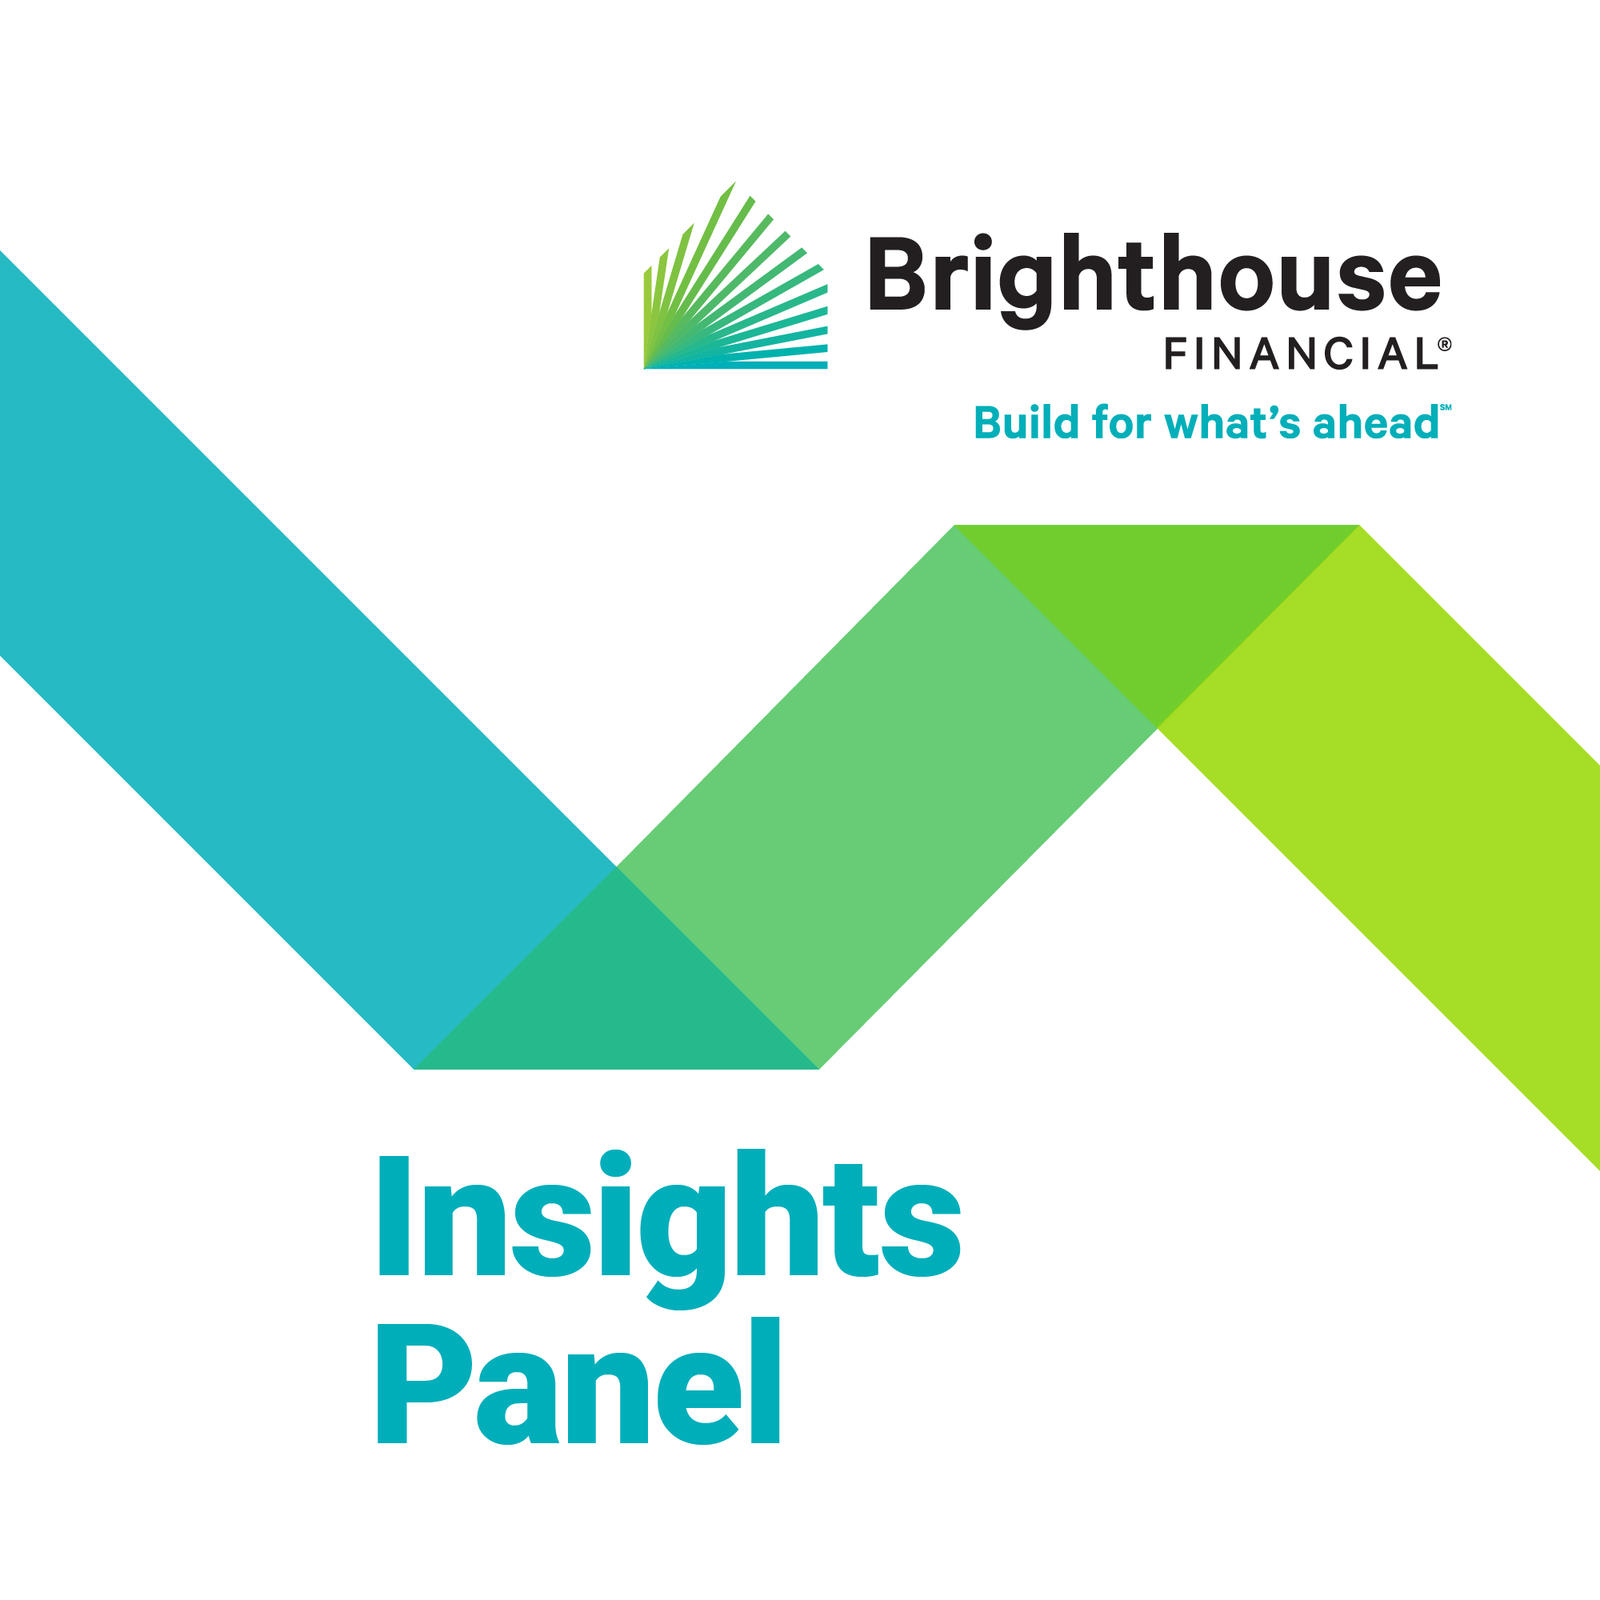 The Brighthouse Financial Insights Panel.